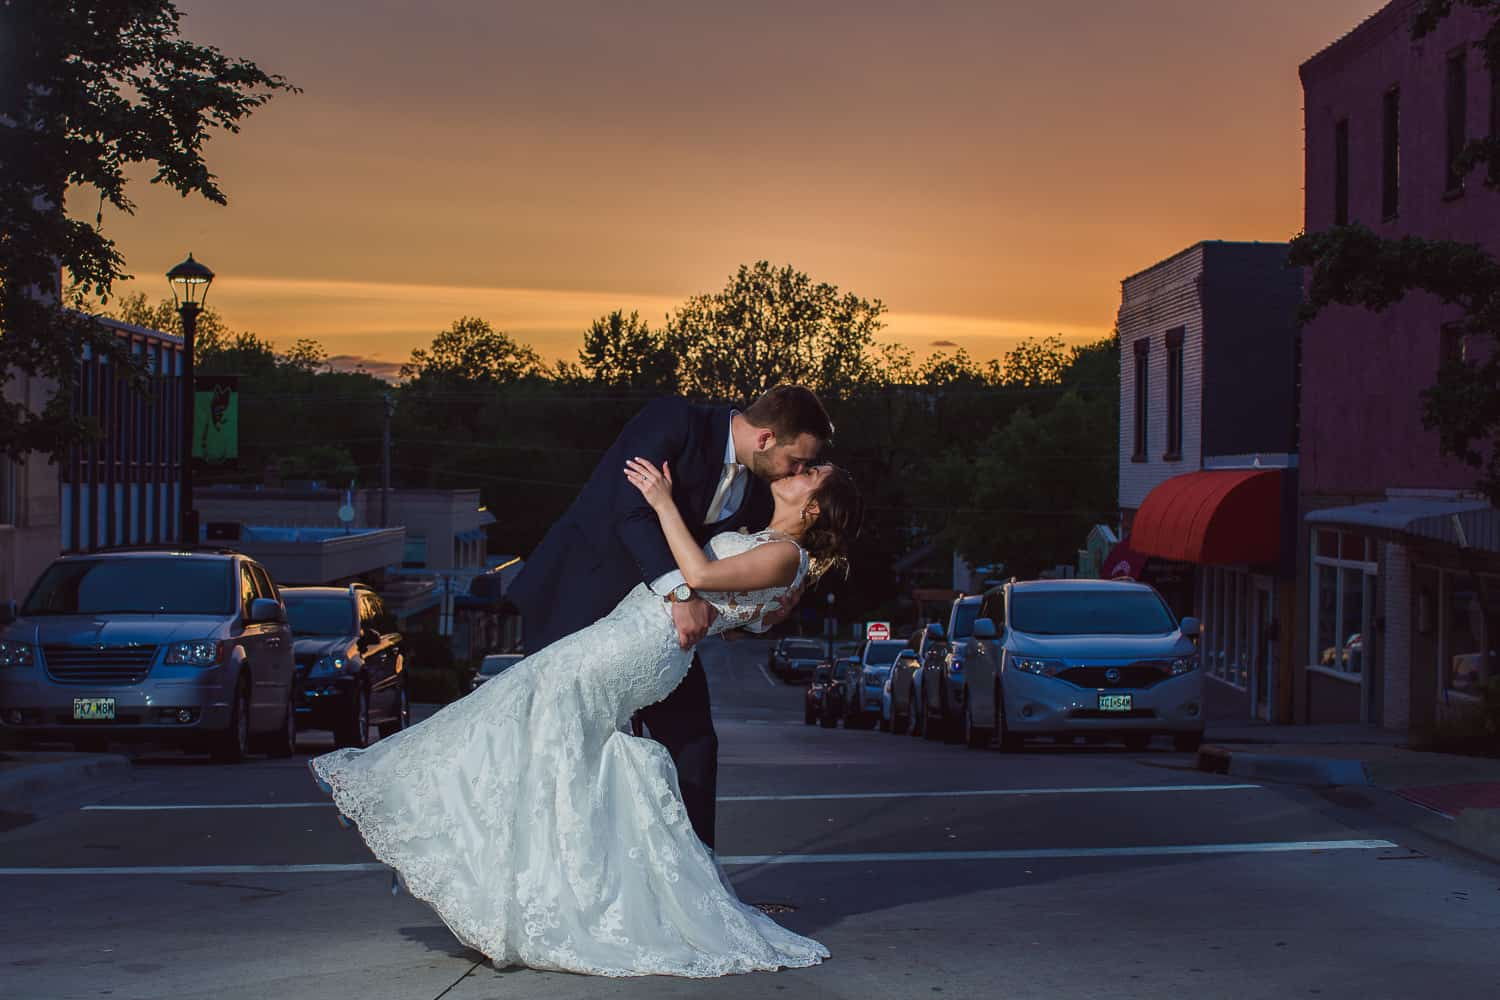 Sunset wedding portraits in downtown Liberty Missouri